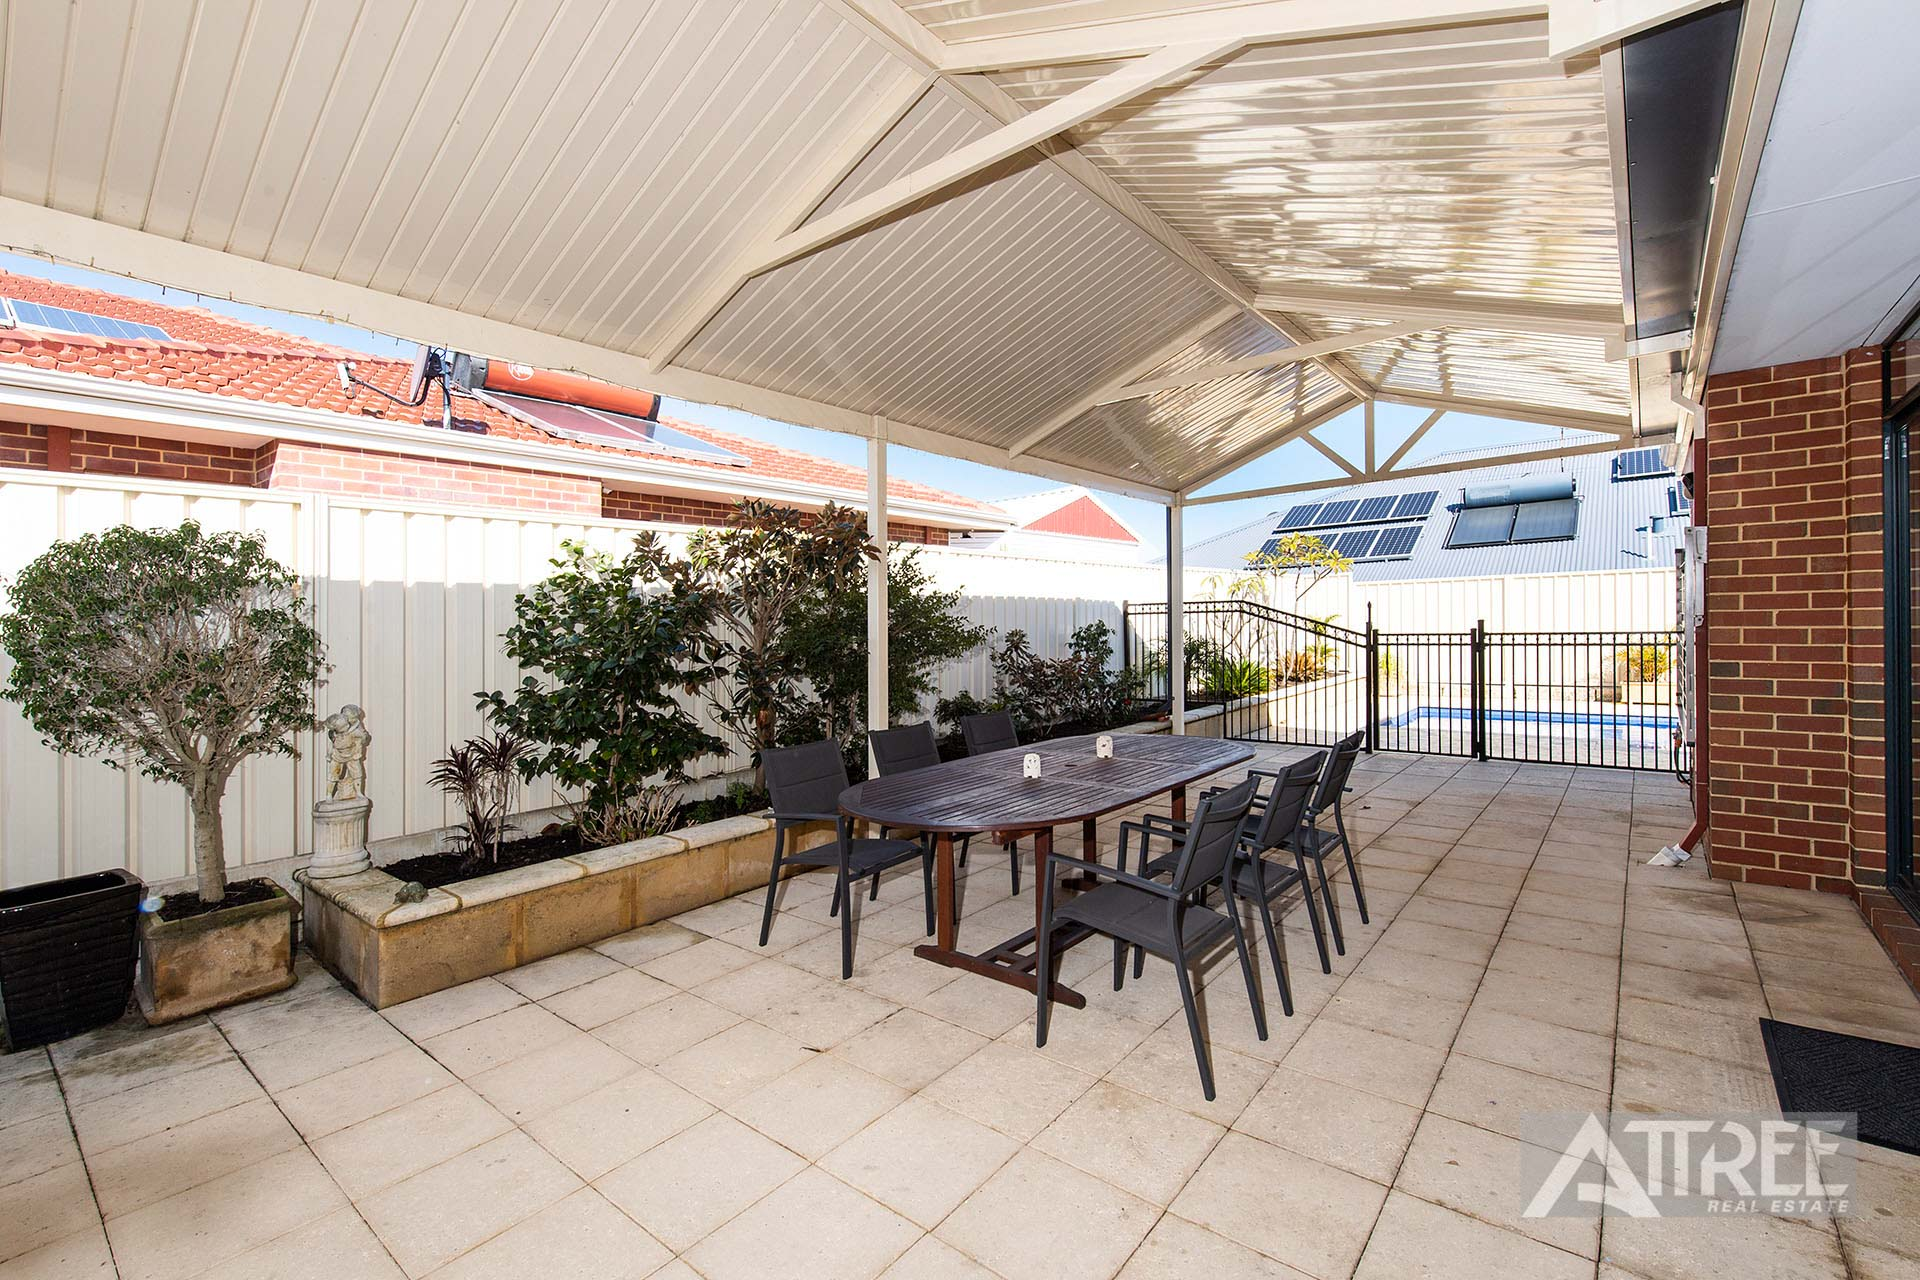 Property for sale in CANNING VALE, 20 Baddesley Way : Attree Real Estate